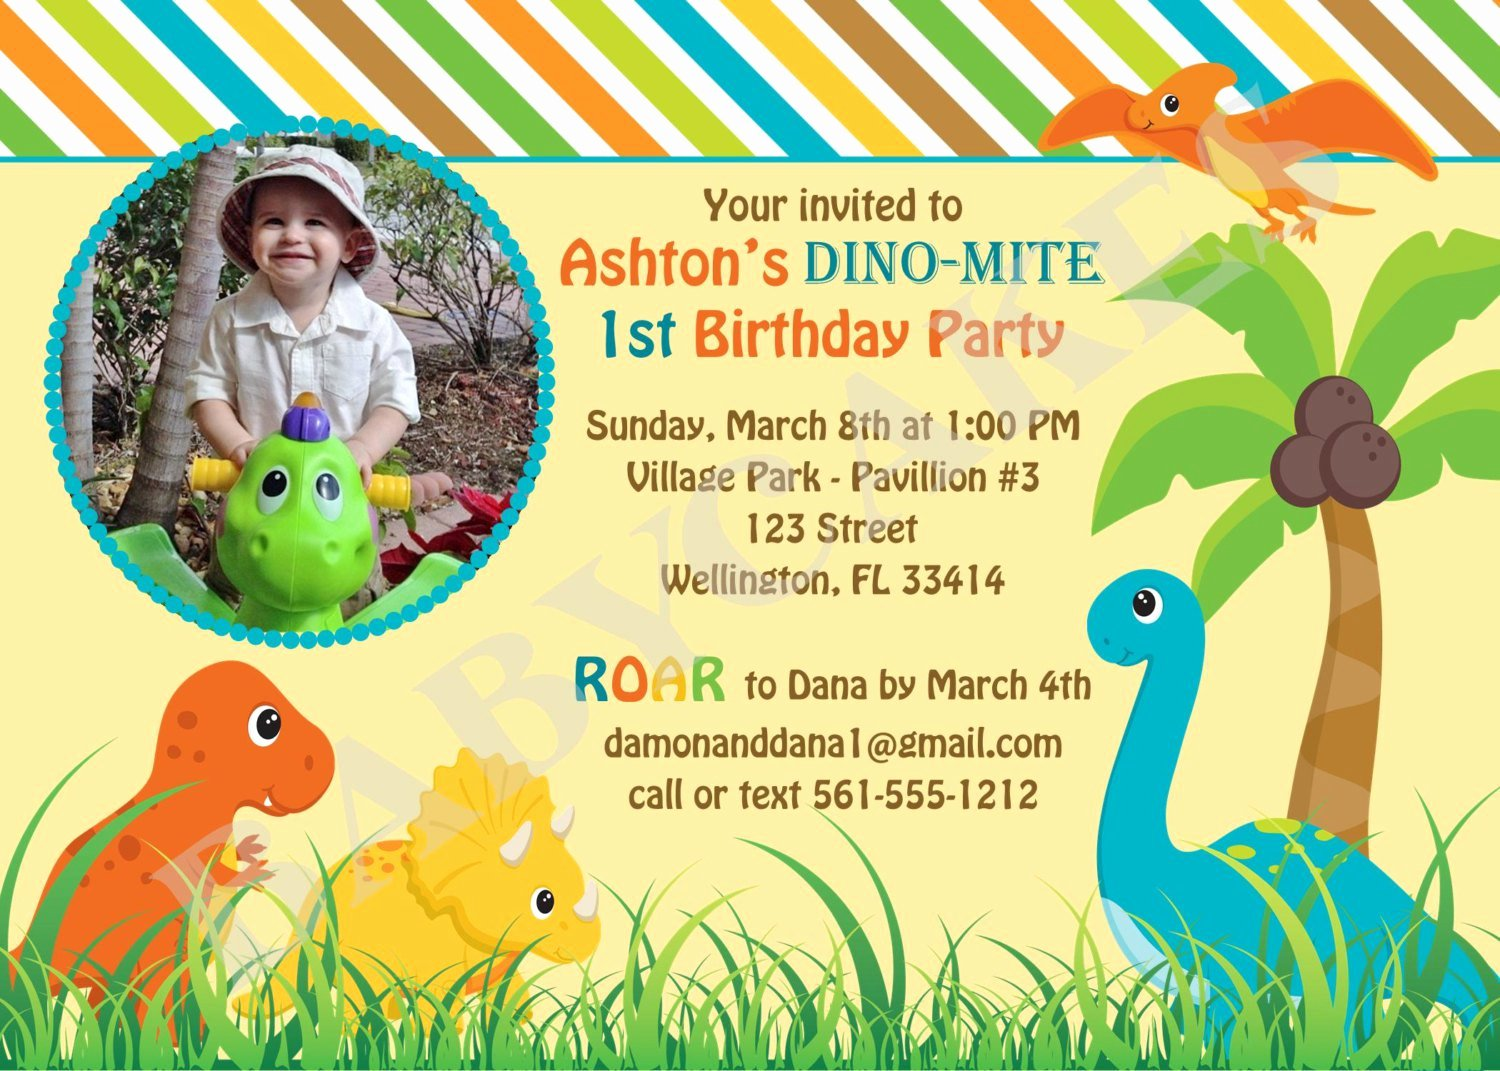 Dinosaur Birthday Invitation Template Lovely Dinosaur Birthday Invitation